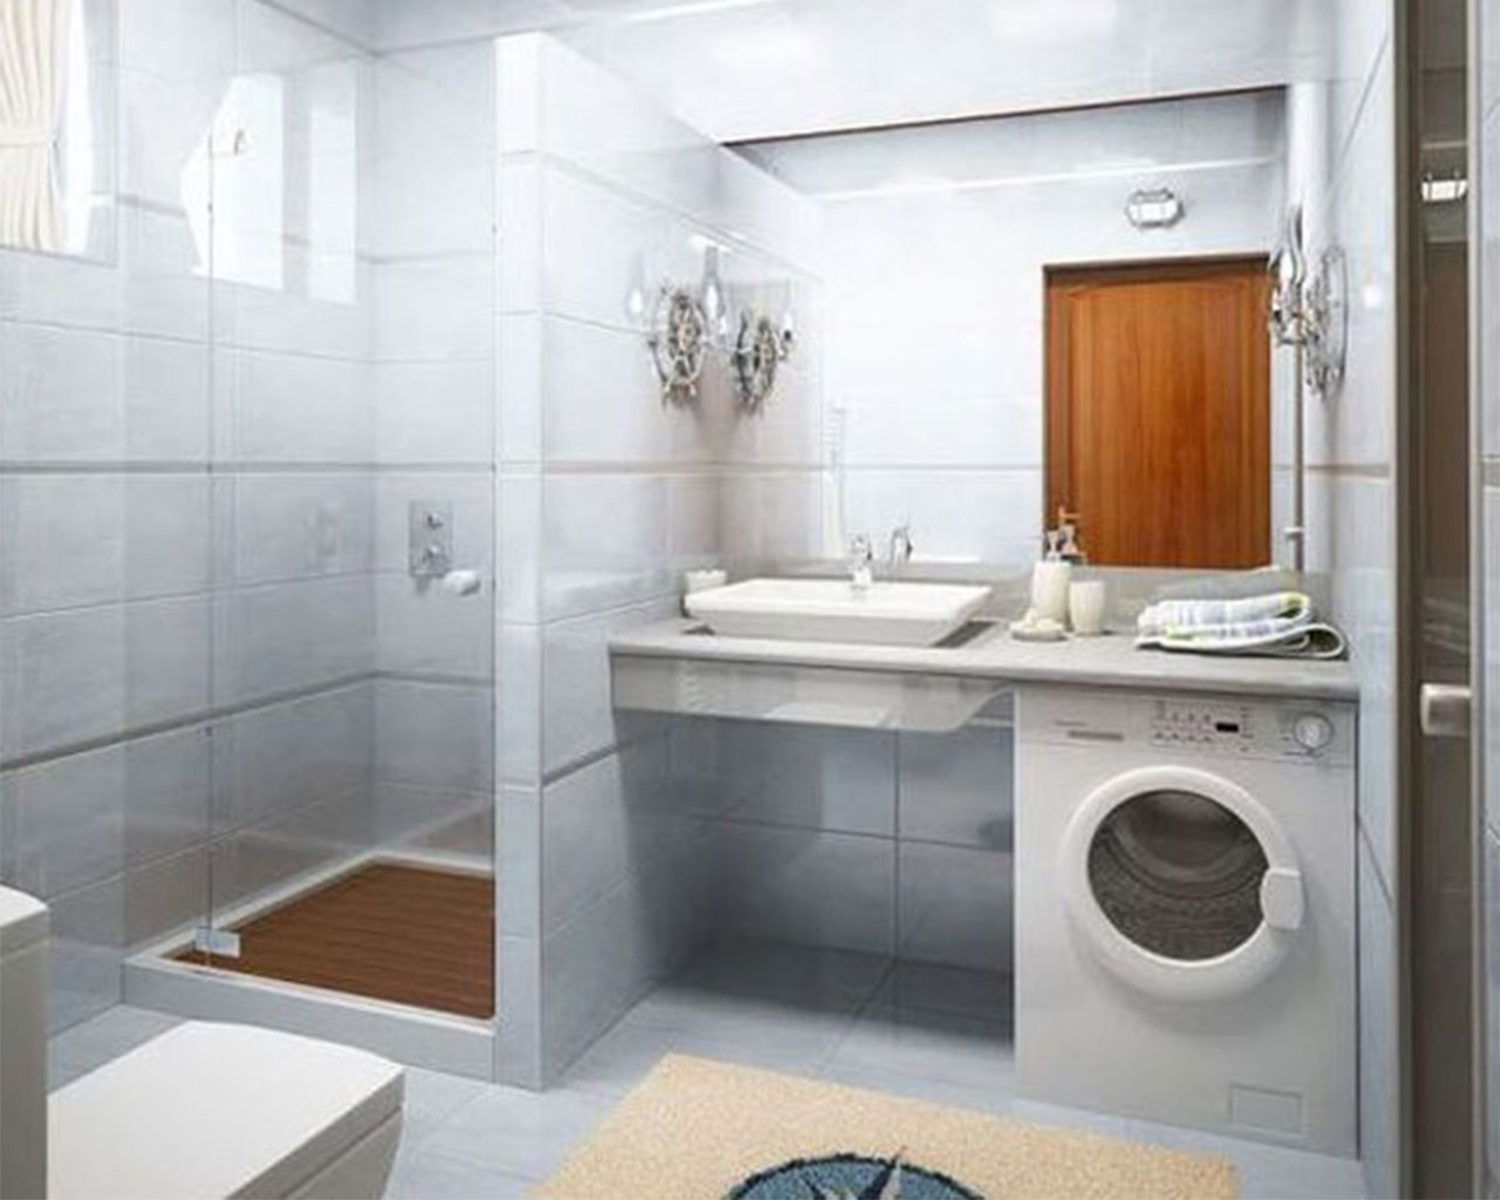 Superieur Simple Bathroom Design Idea With Washing Machine